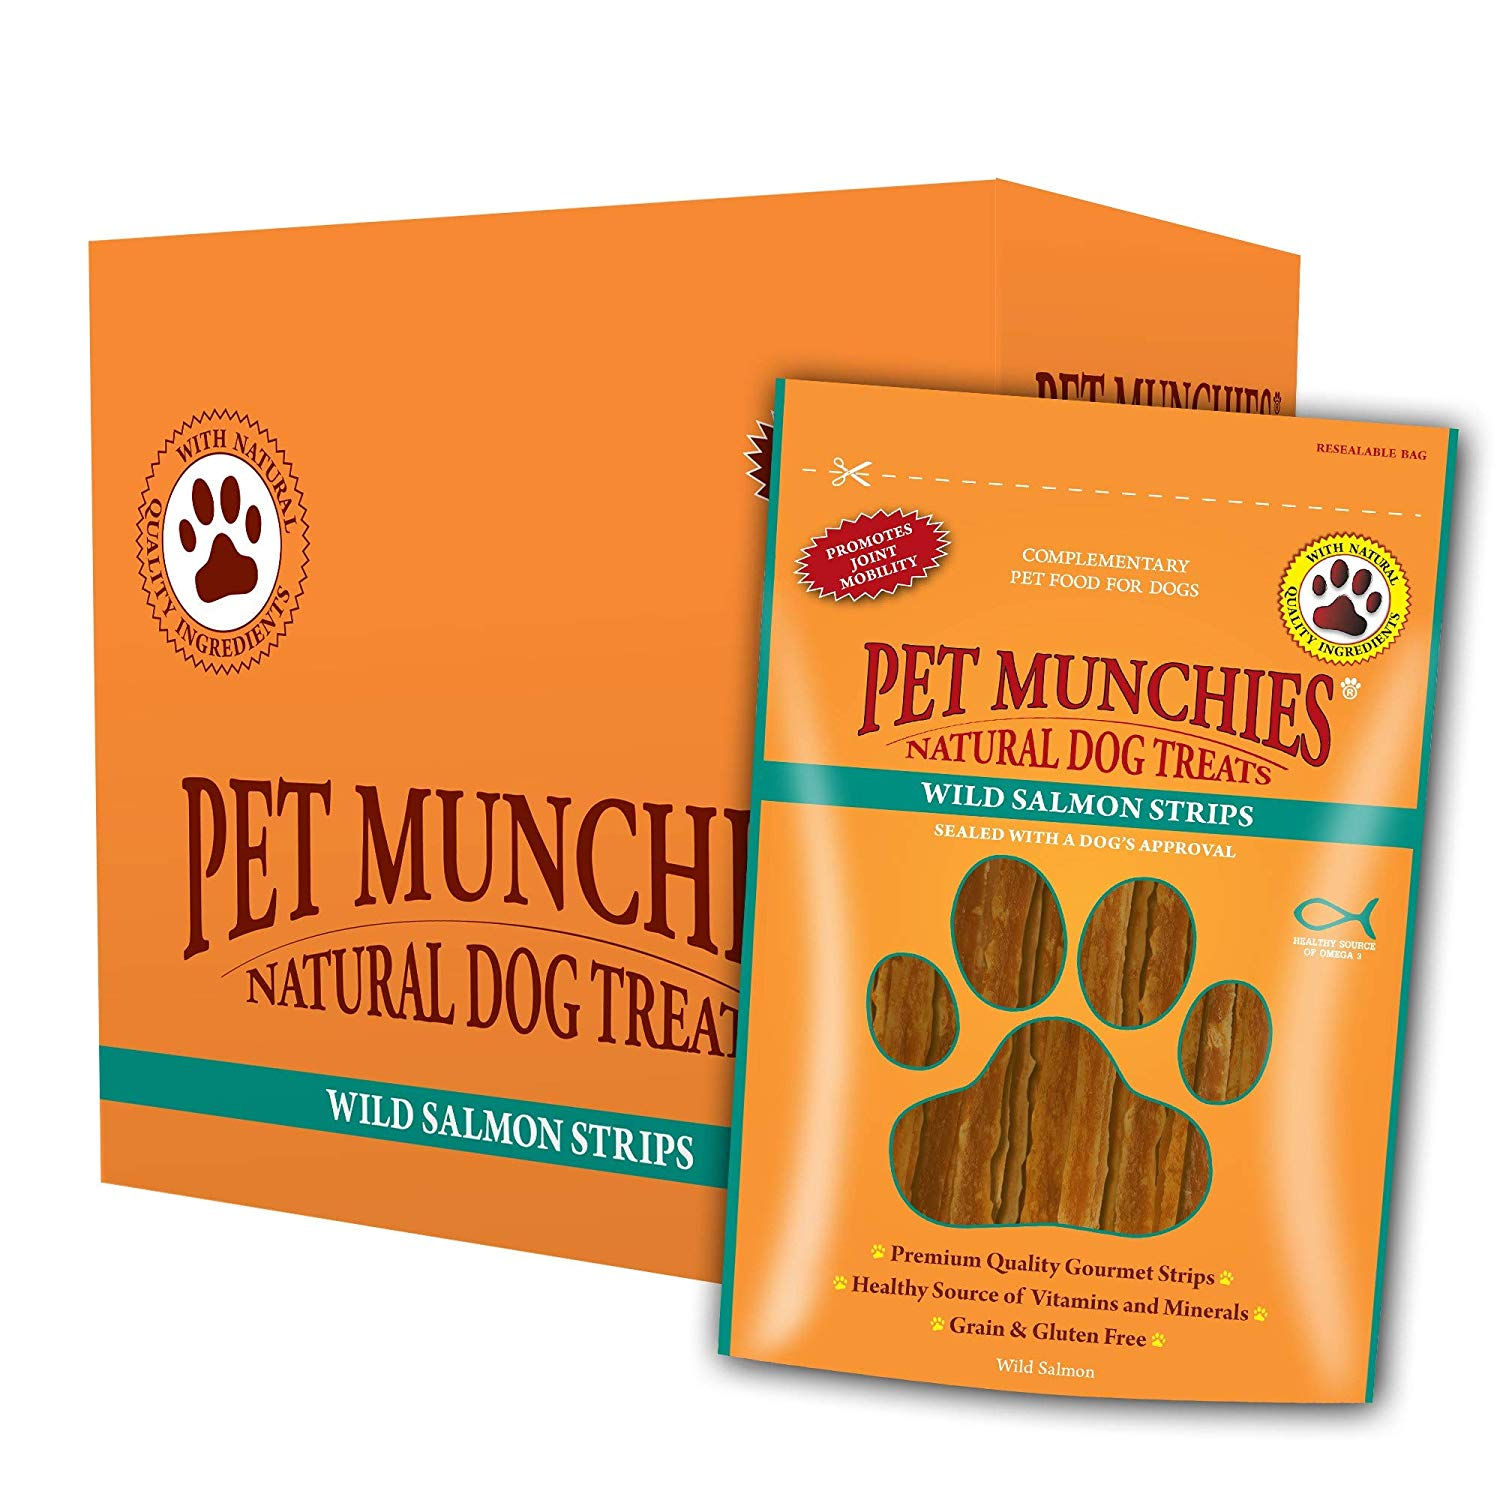 Pet Munchies Wild Salmon Strips 1 Box of 8